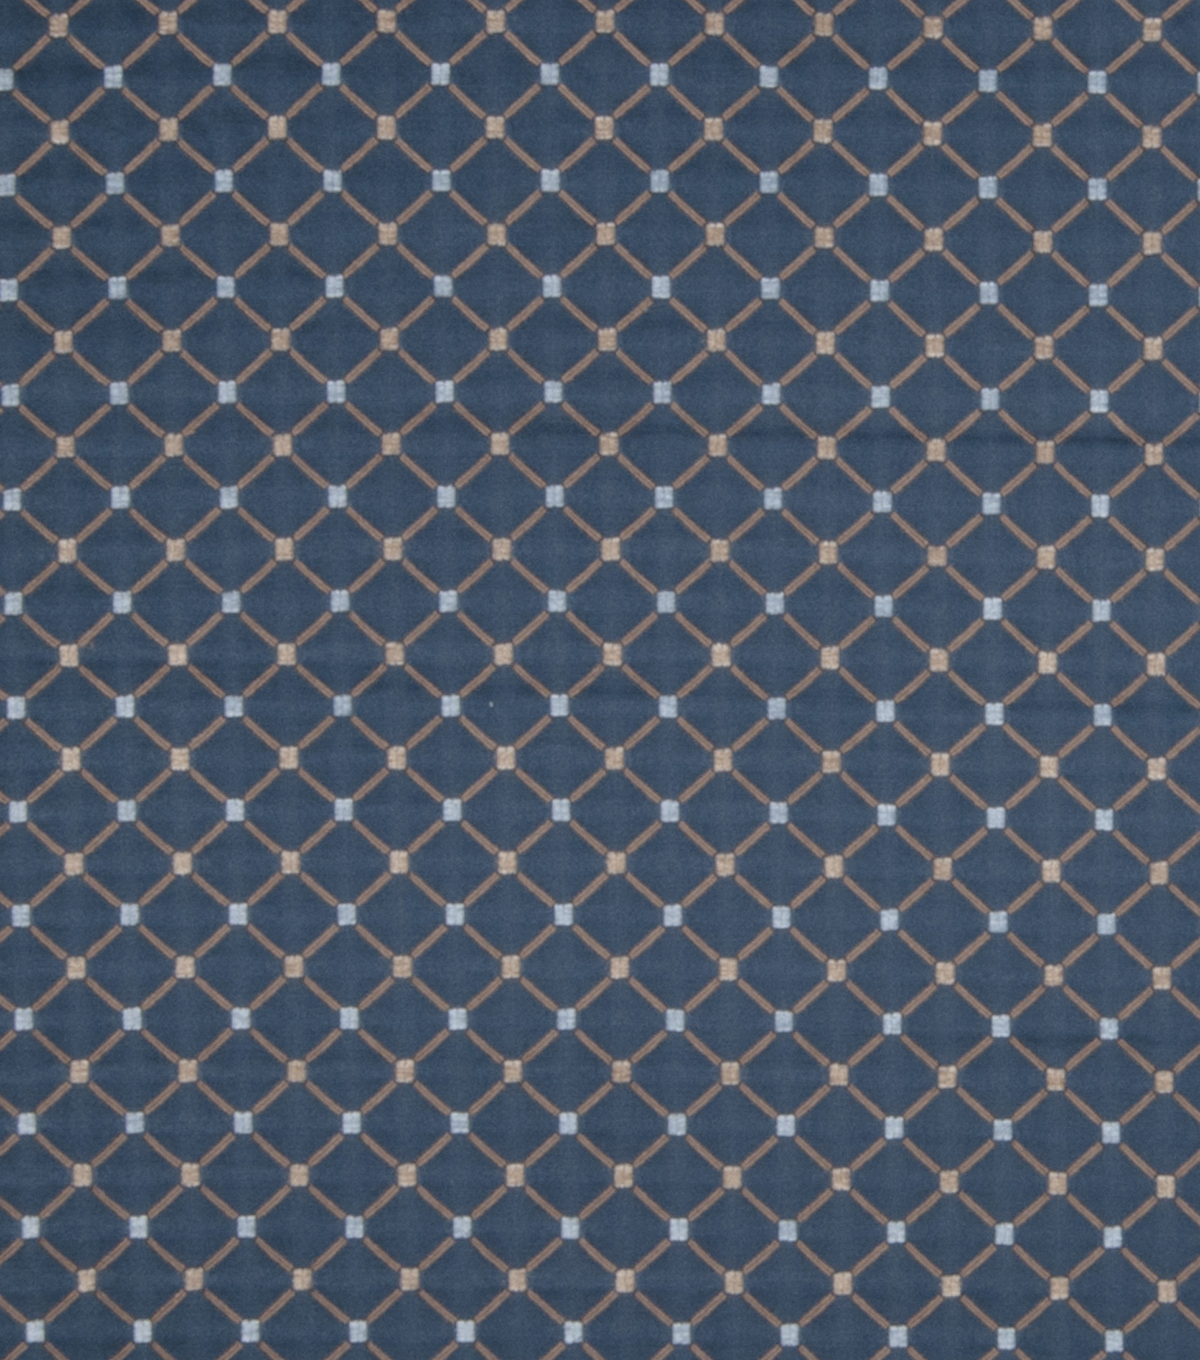 Home Decor 8\u0022x8\u0022 Fabric Swatch-Jaclyn Smith Forward Cobalt